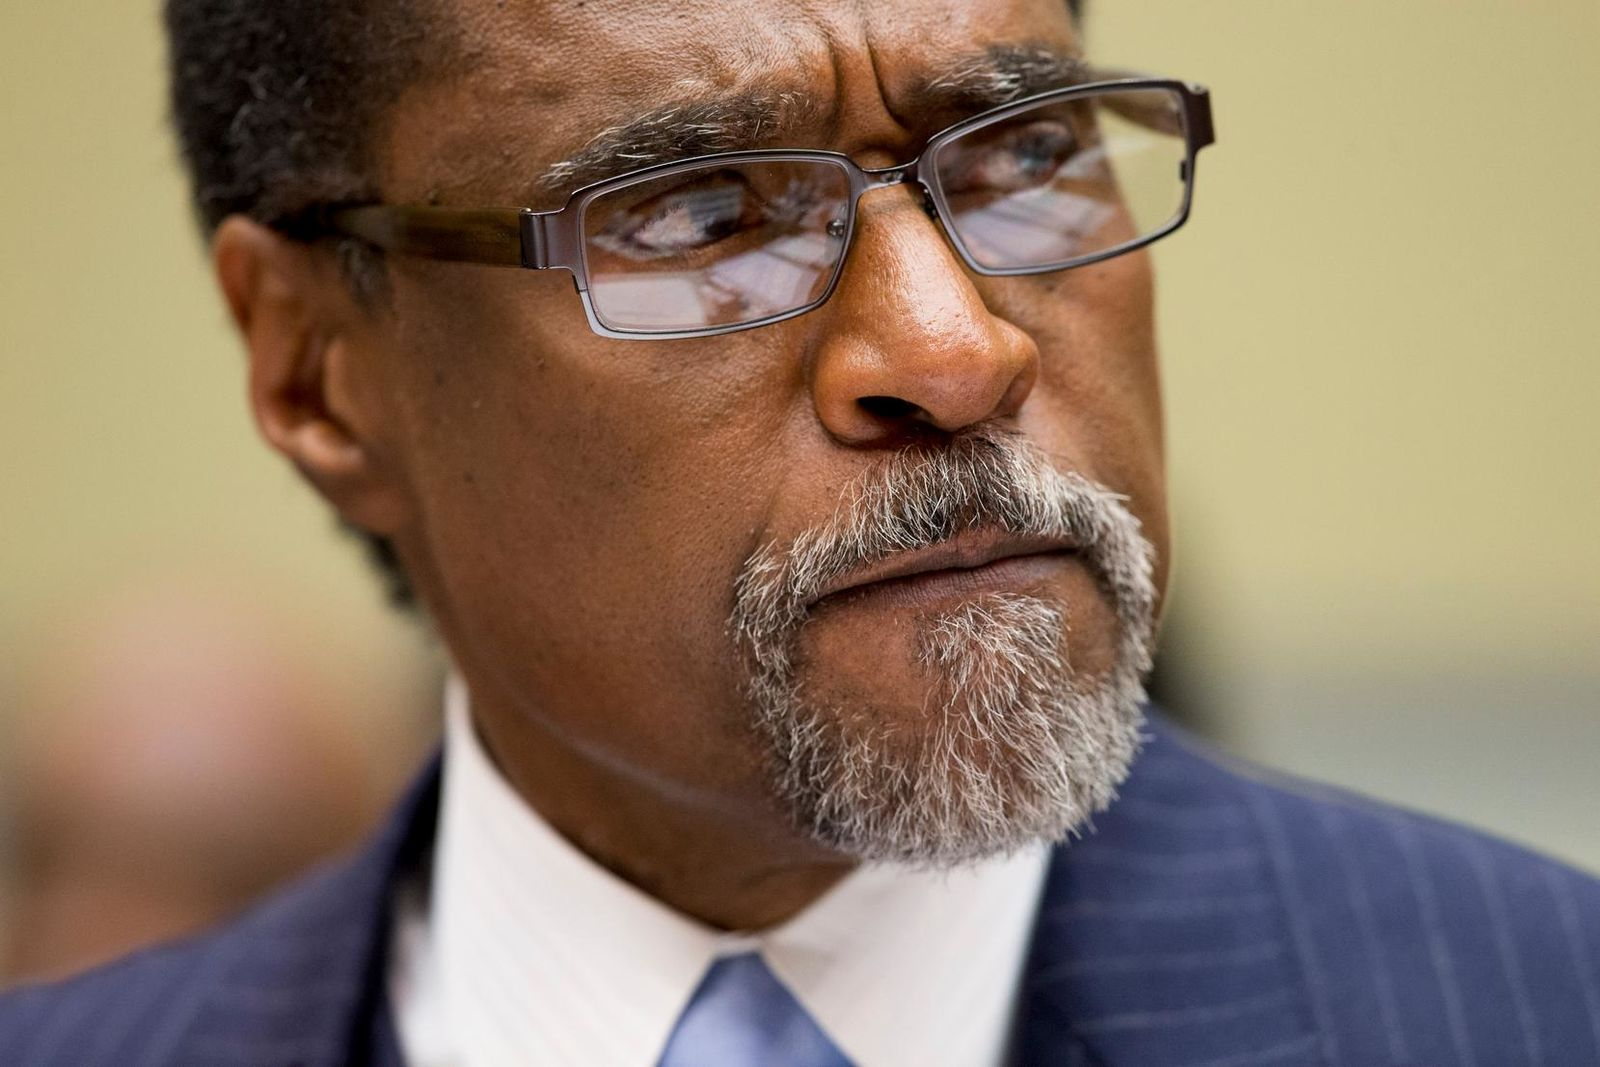 FILE- In this March 15, 2016, file photo, former Flint, Mich., Emergency Manager Darnell Earley appears before a House Oversight and Government Reform Committee hearing, in Washington. (AP Photo/Andrew Harnik, File)